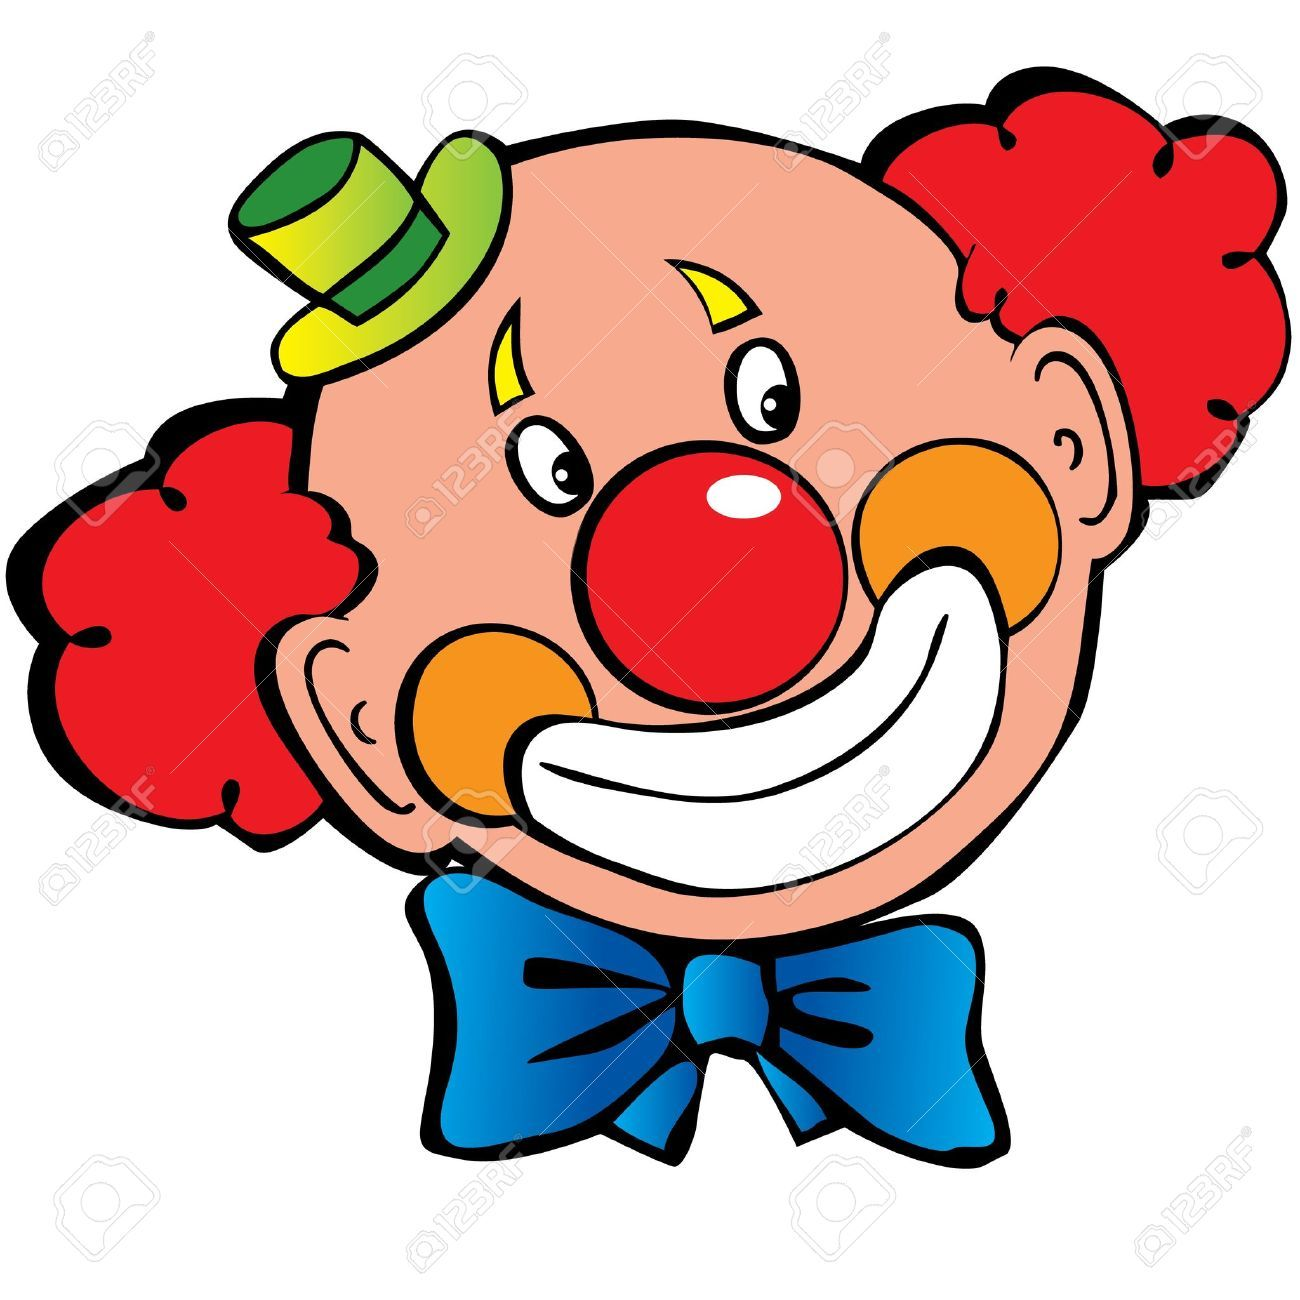 image of clown face clipart 9 free clown clipart 1 page of rh pinterest co uk free crown clip art download free clown clip art to print